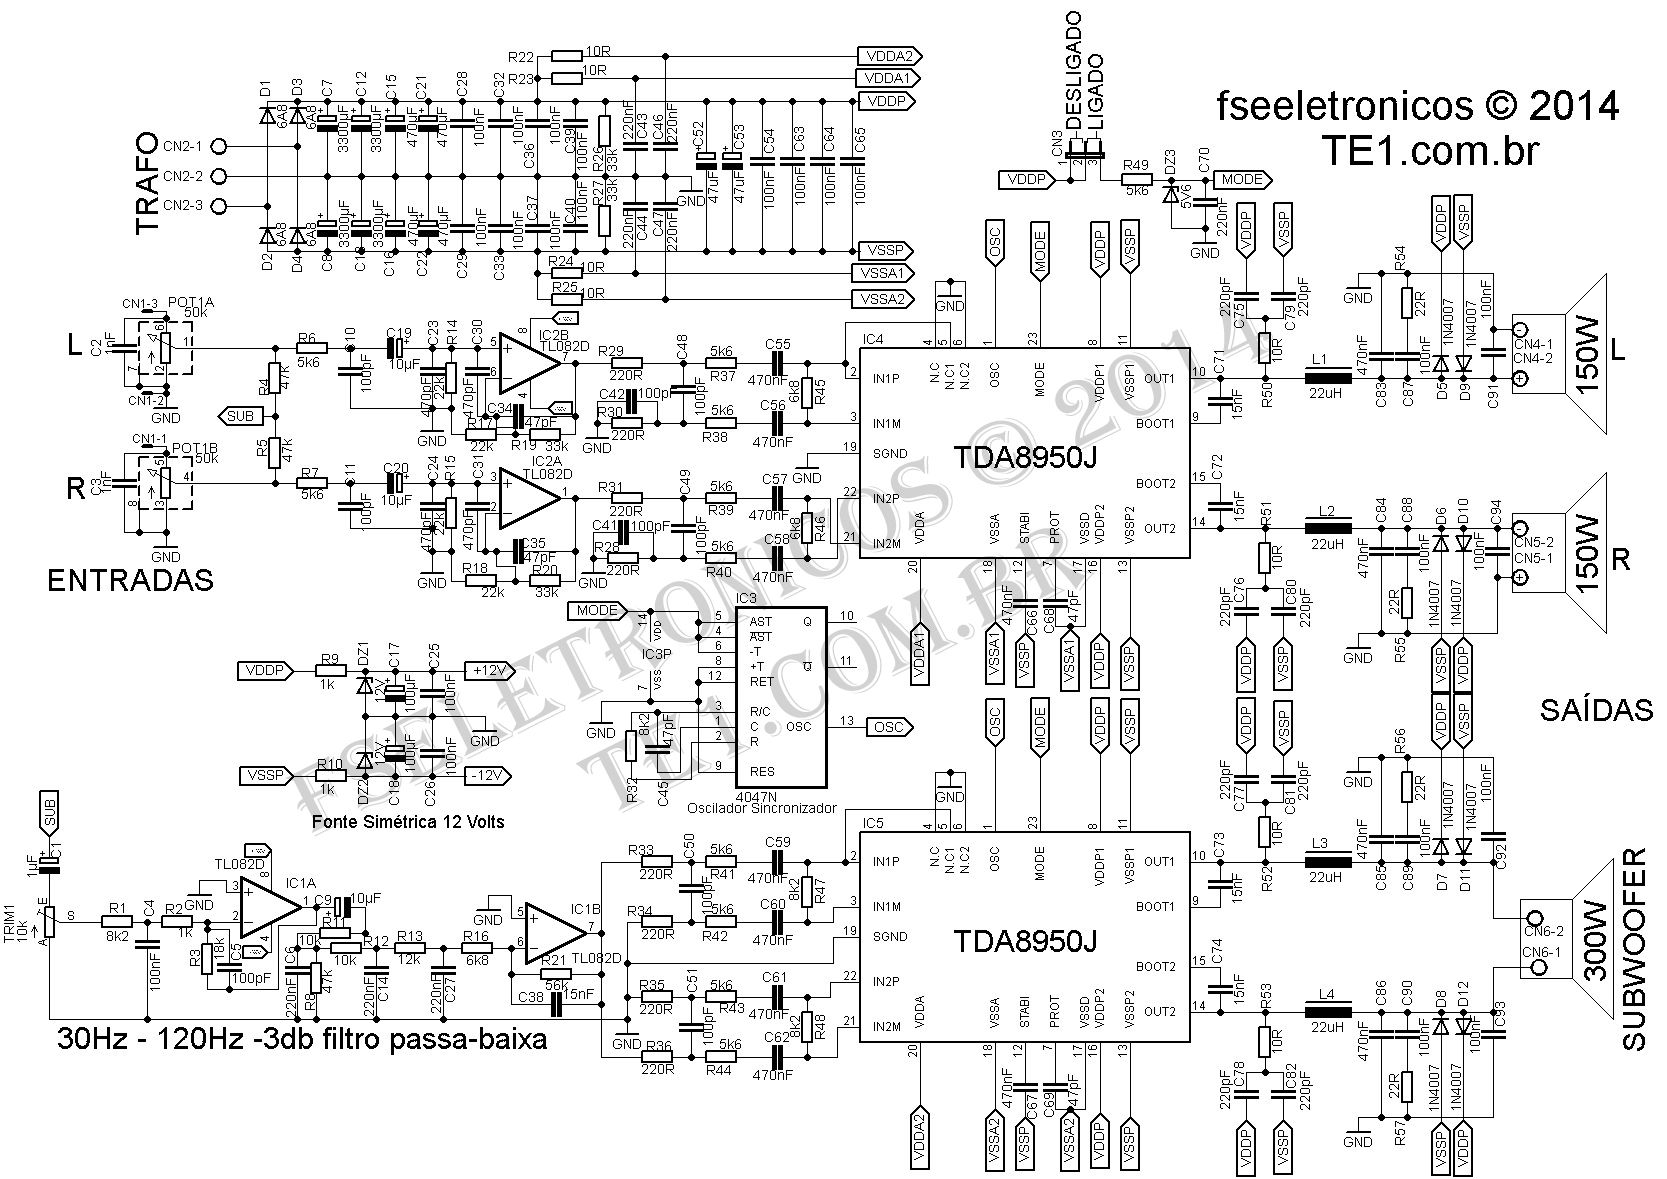 Pin By On S B Pinterest Electronics And Tech Mosquito Insect Repellent Circuit Using 555 Ic Circuits Gallery Puzzle 1 Crossword Brickwork Projects